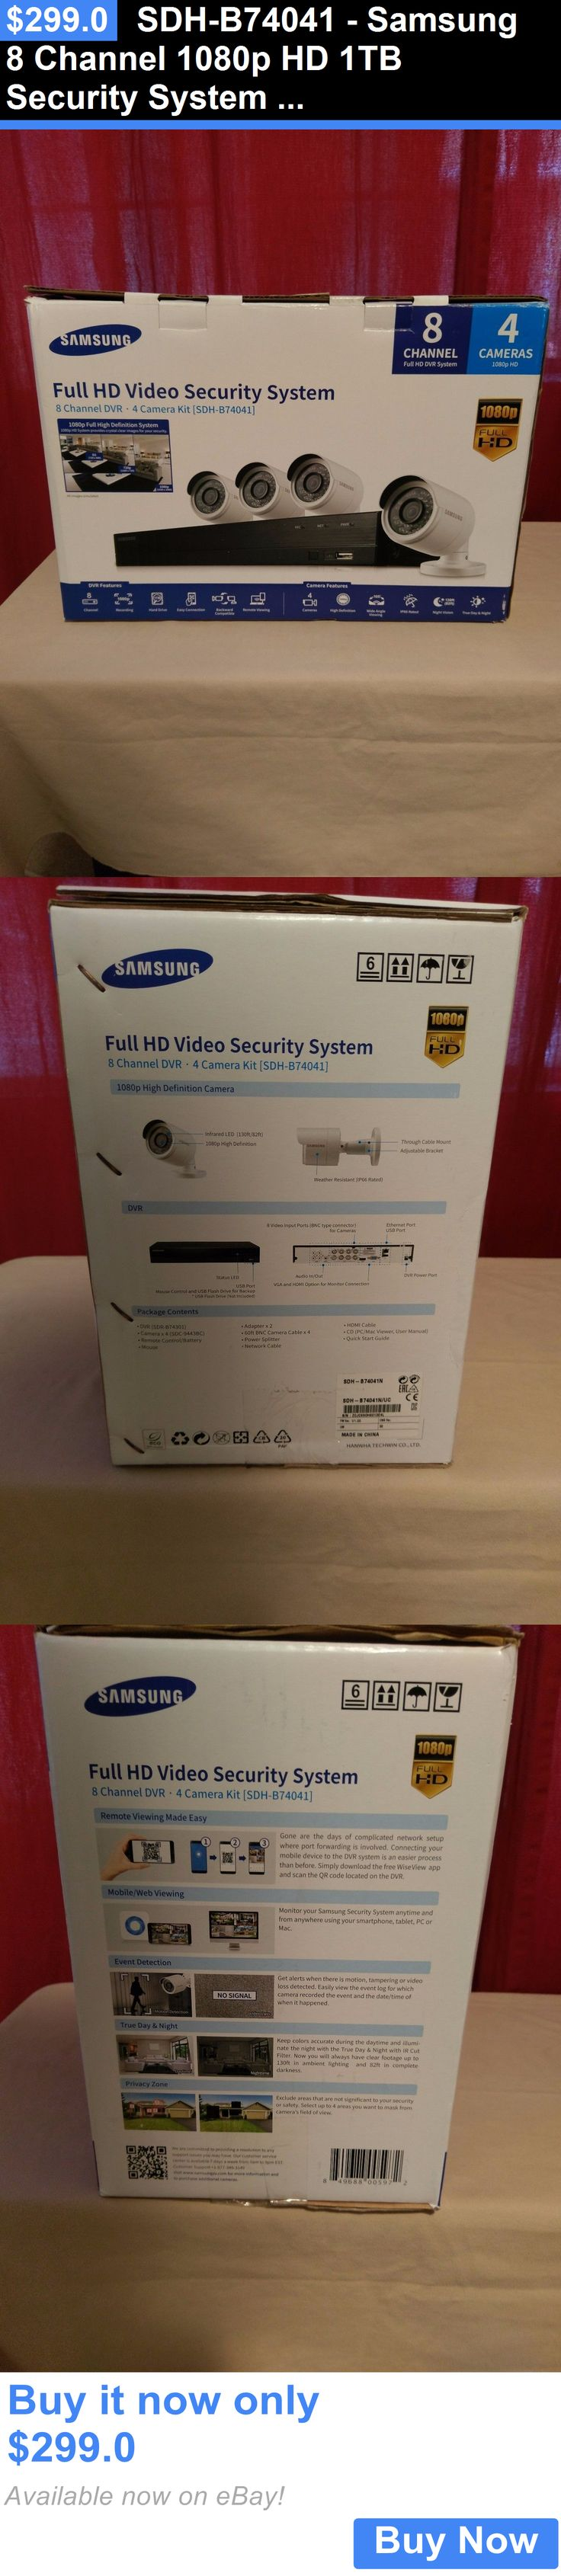 Notebook samsung expert x37 - Electronics Sdh B74041 Samsung 8 Channel 1080p Hd 1tb Security System With 4